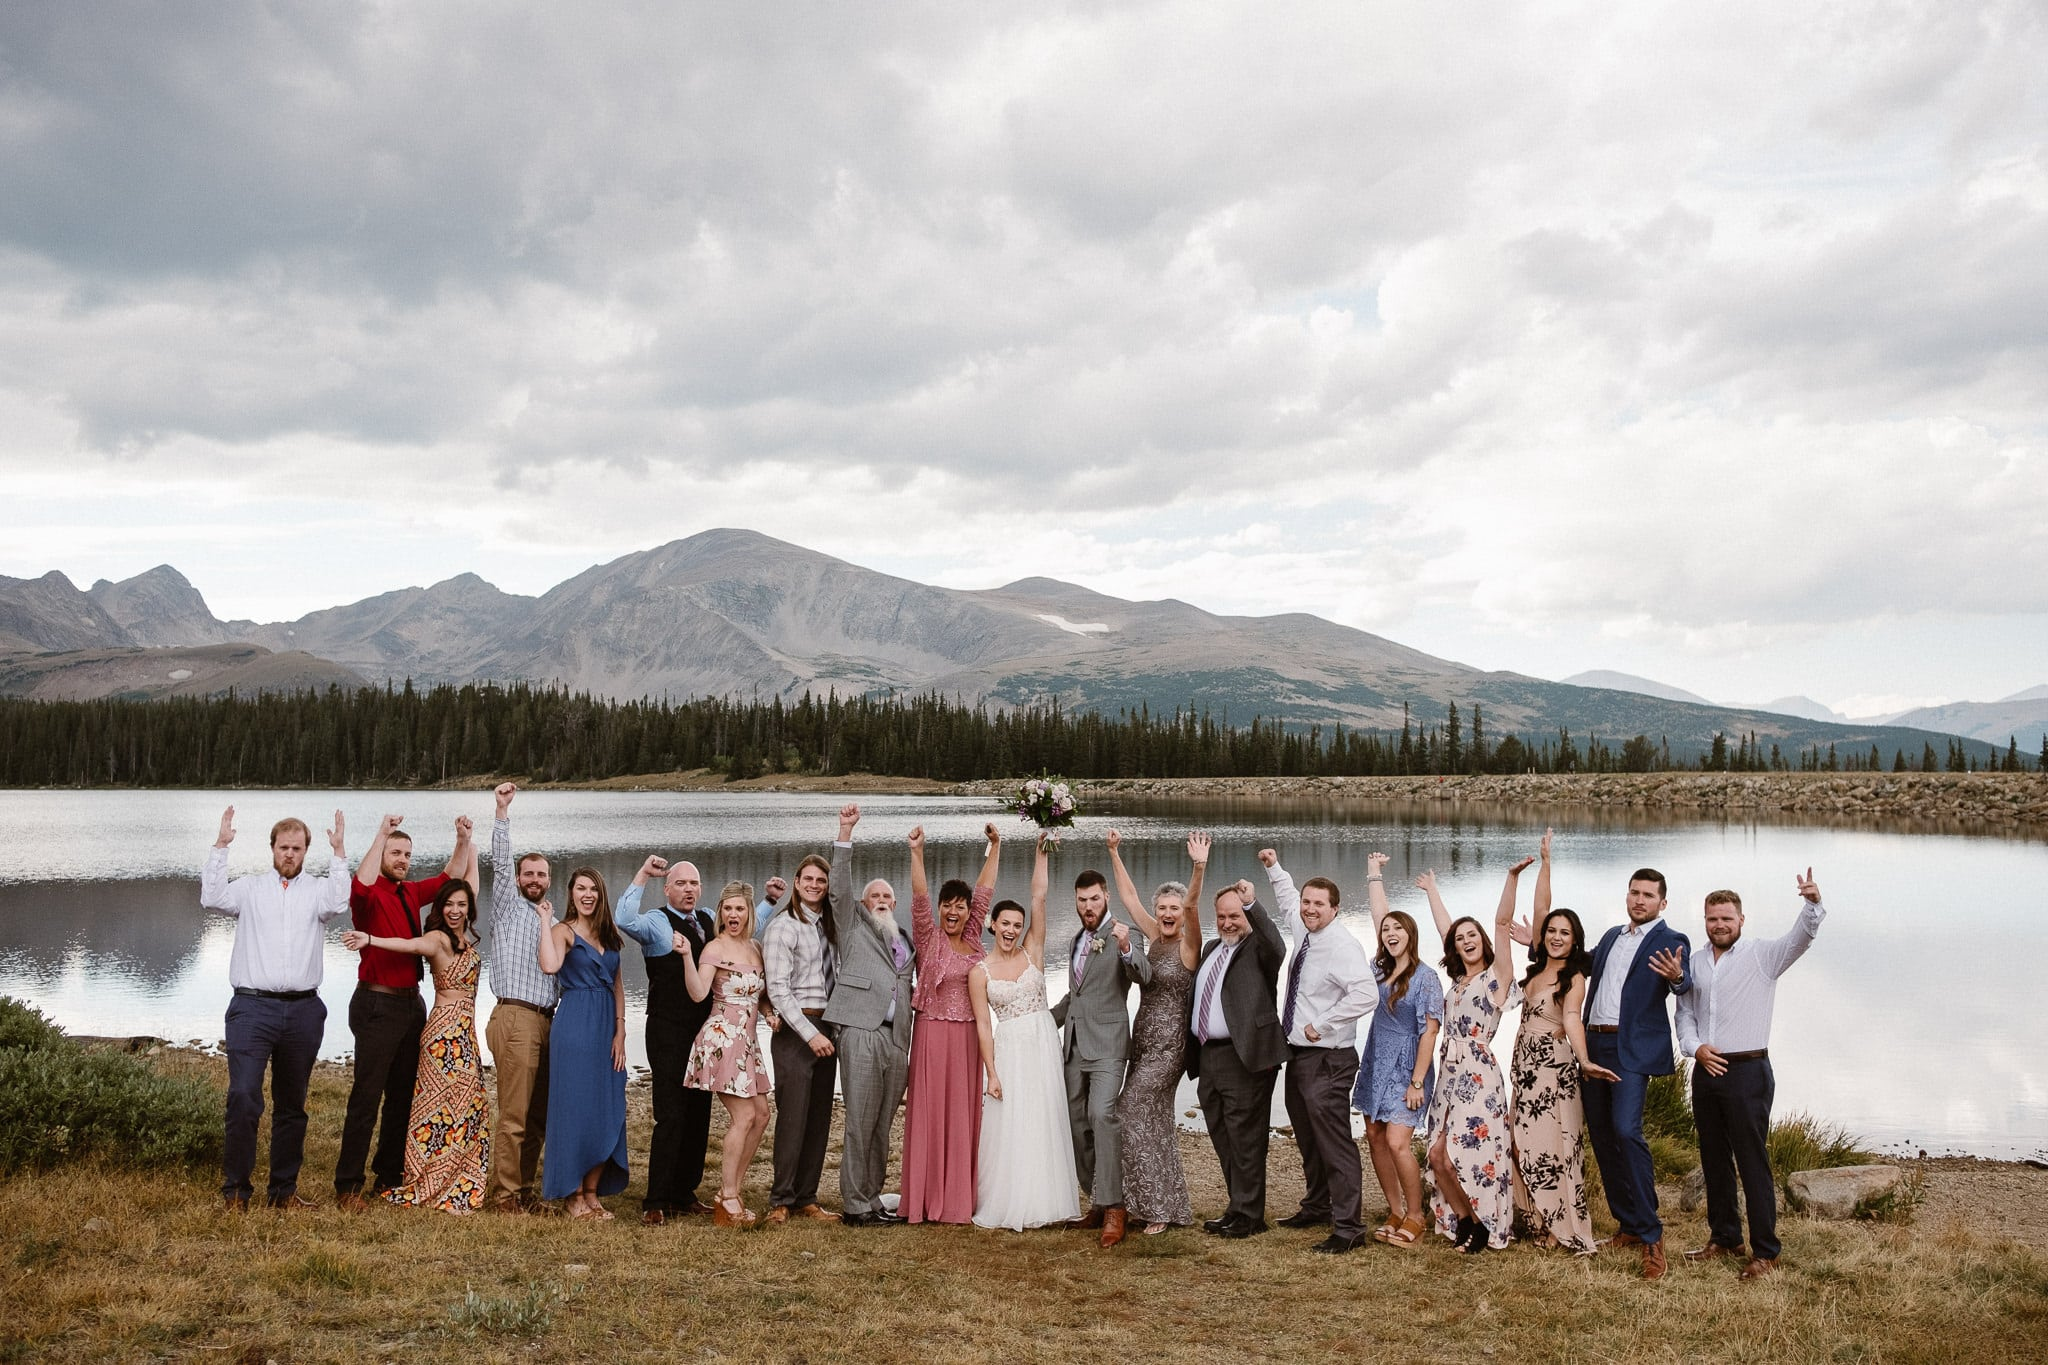 Colorado mountain elopement photographer, alpine lake adventure wedding, Boulder wedding photographer, bride and groom portraits in mountains, laidback boho wedding, hiking elopement, wedding party, wedding guests group photo